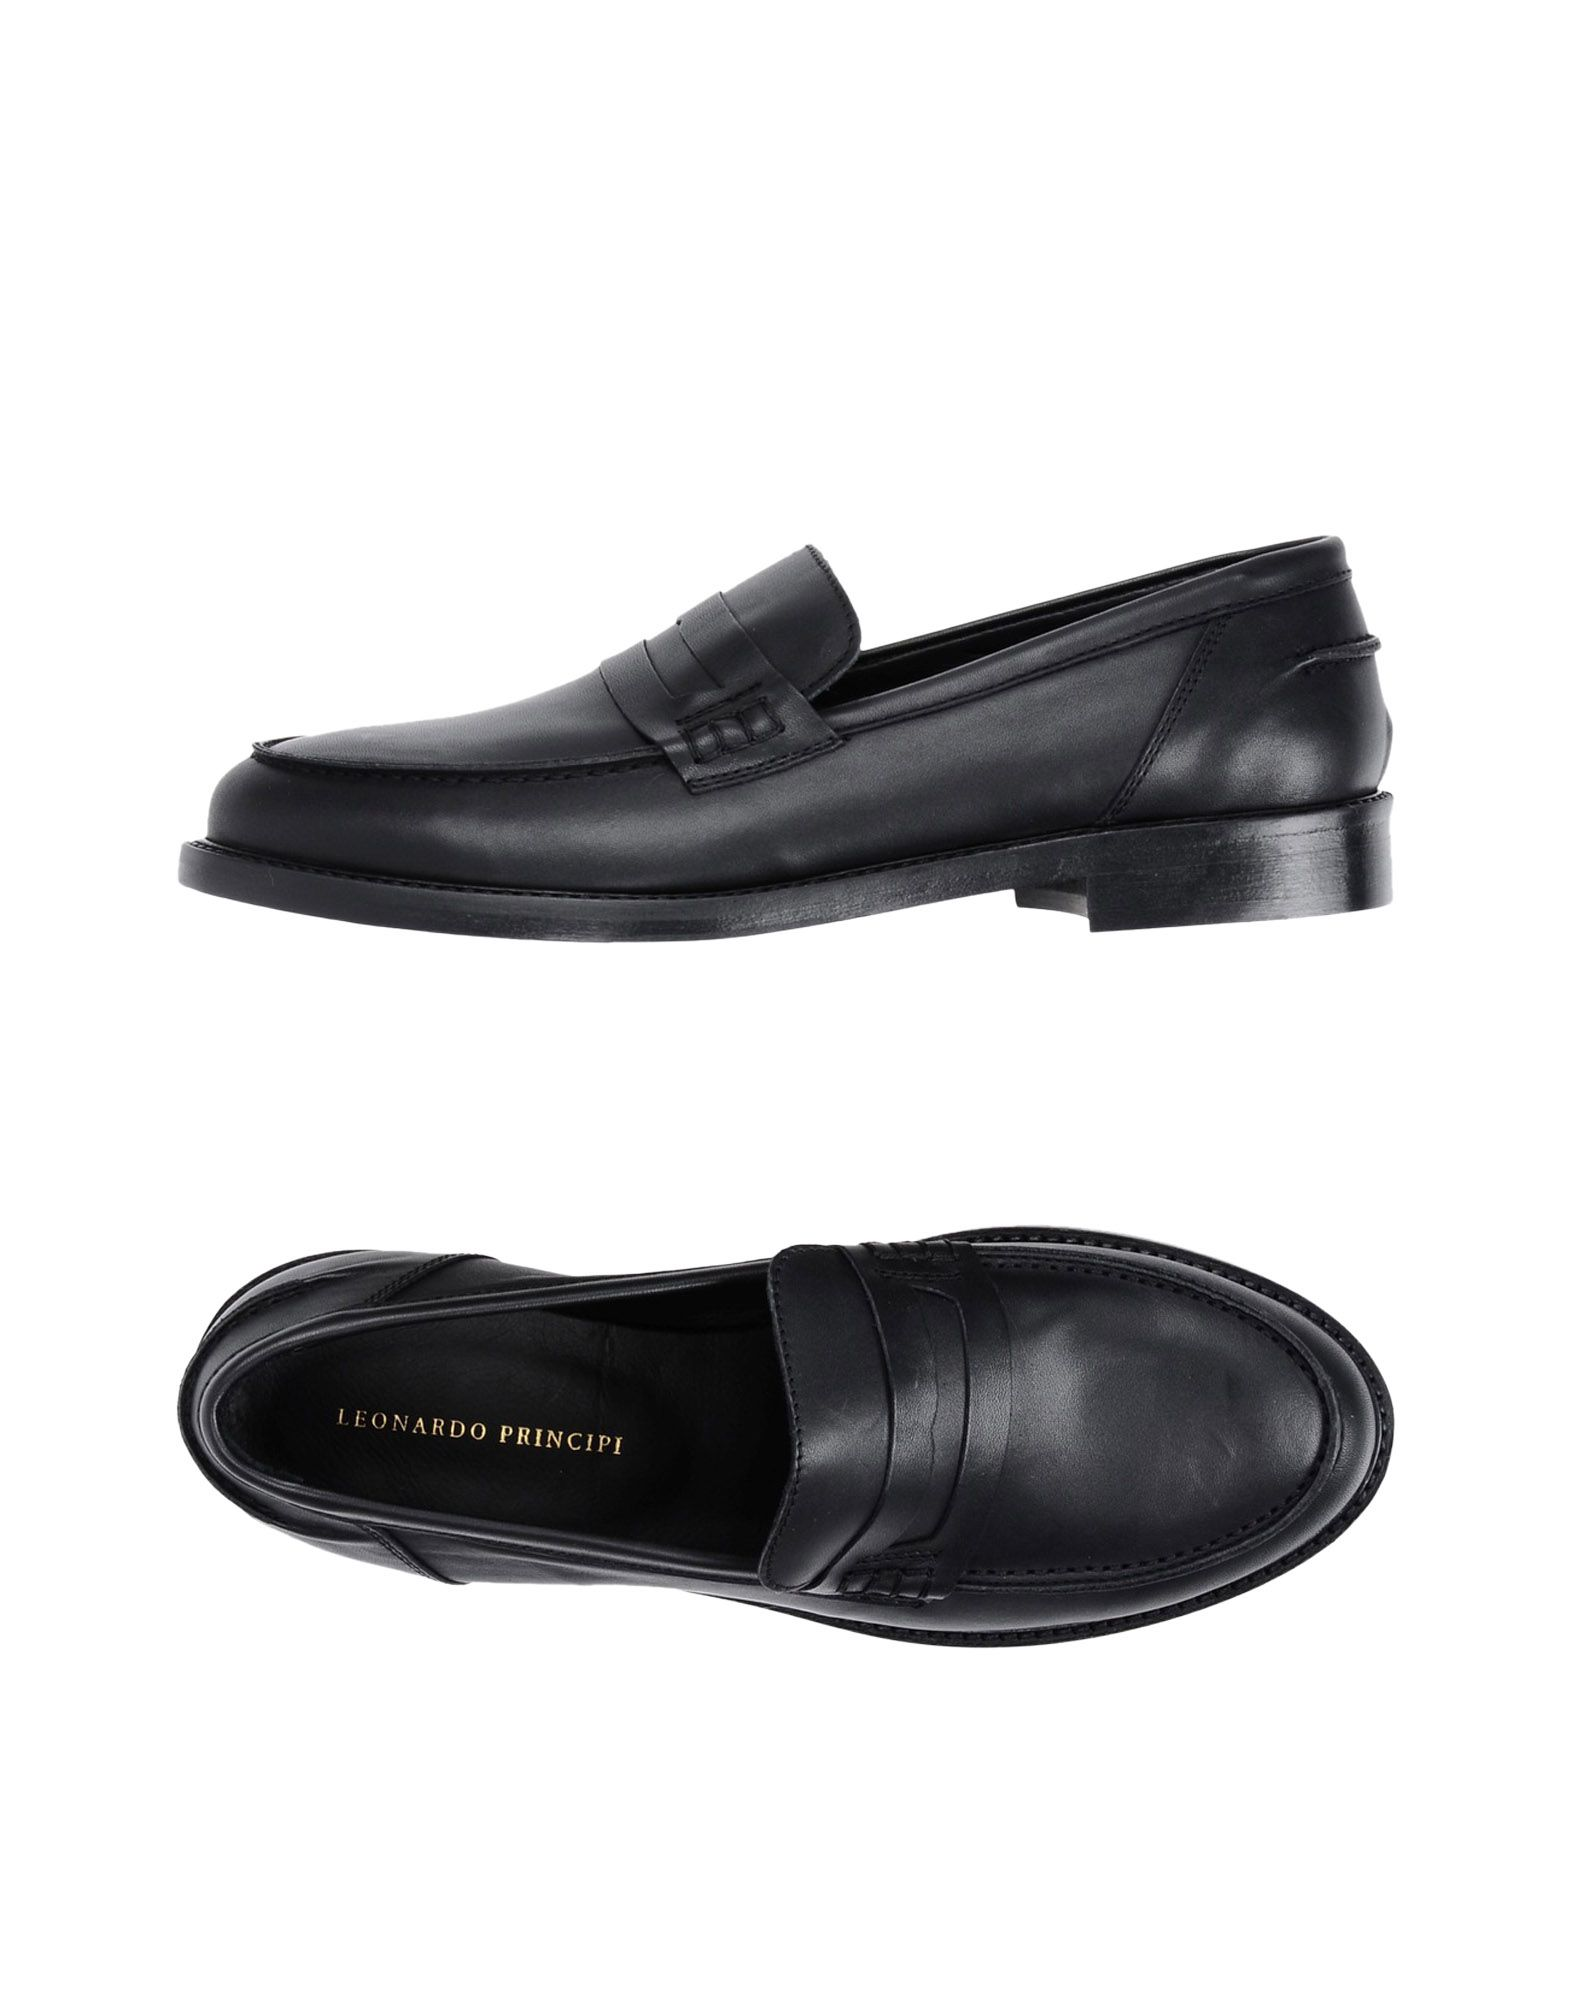 leonardo principi loafers shop at ebates